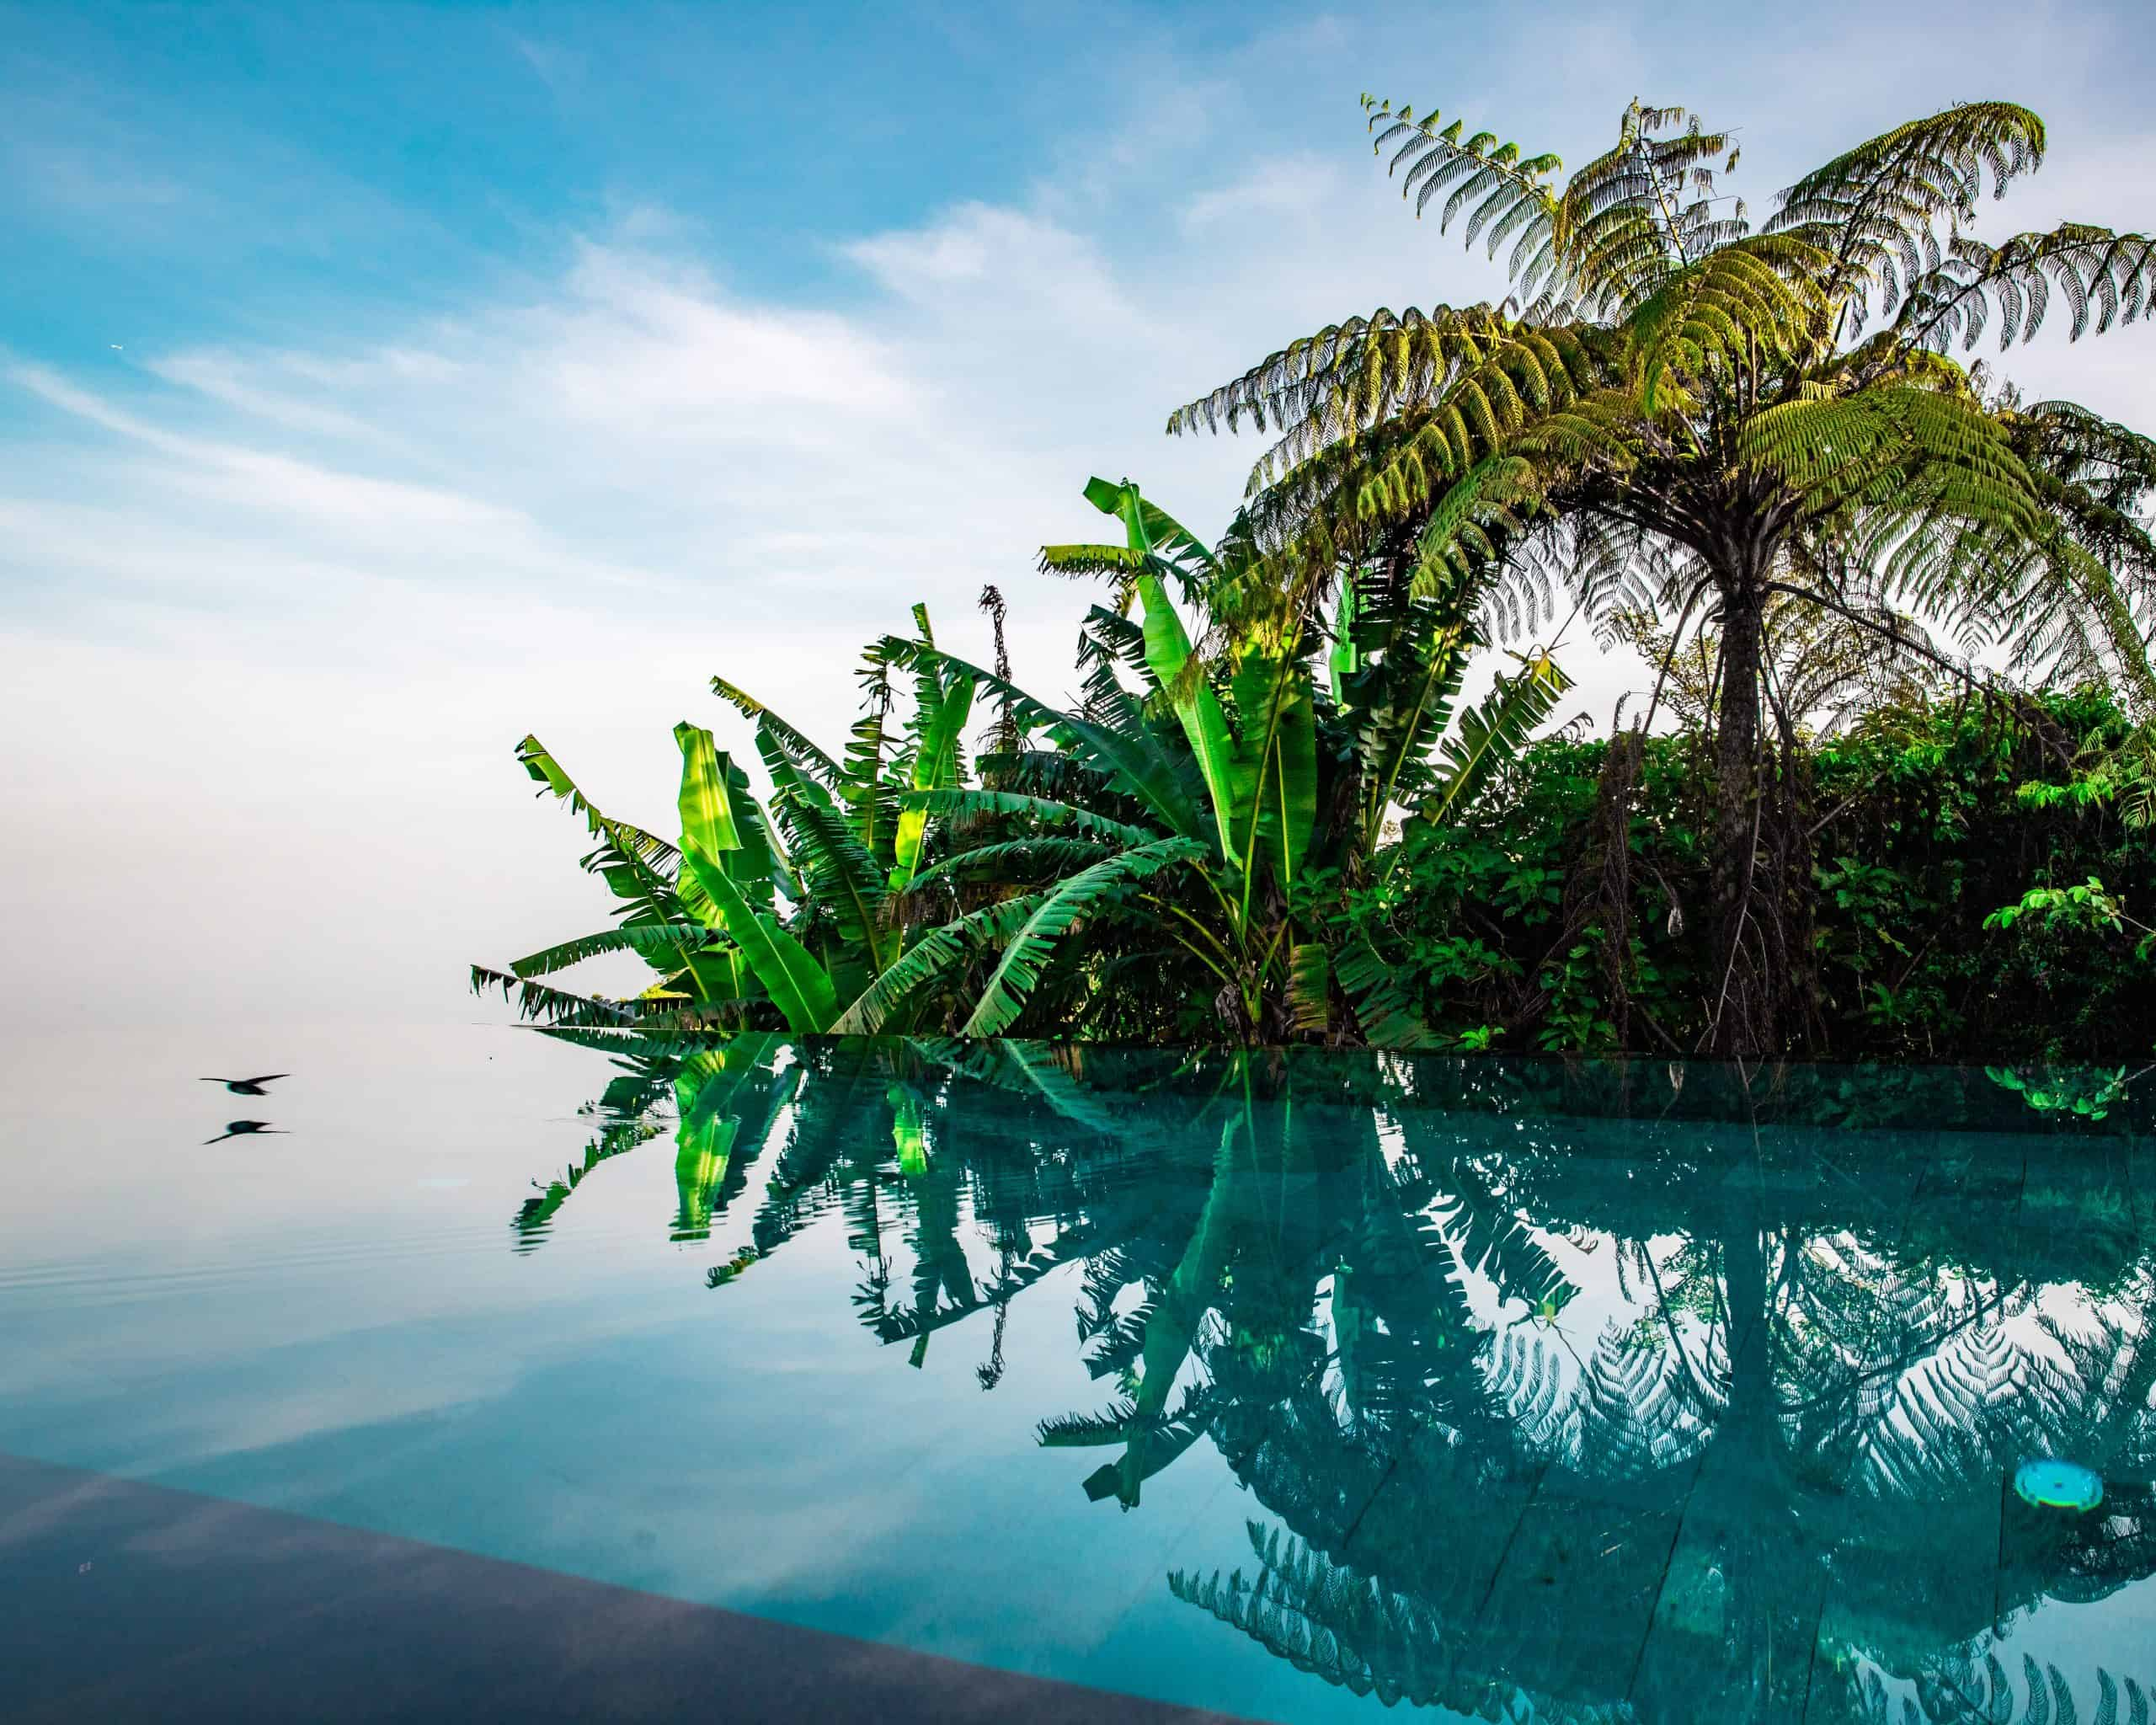 10 Bali hidden gems - Best secret places which are still undiscovered